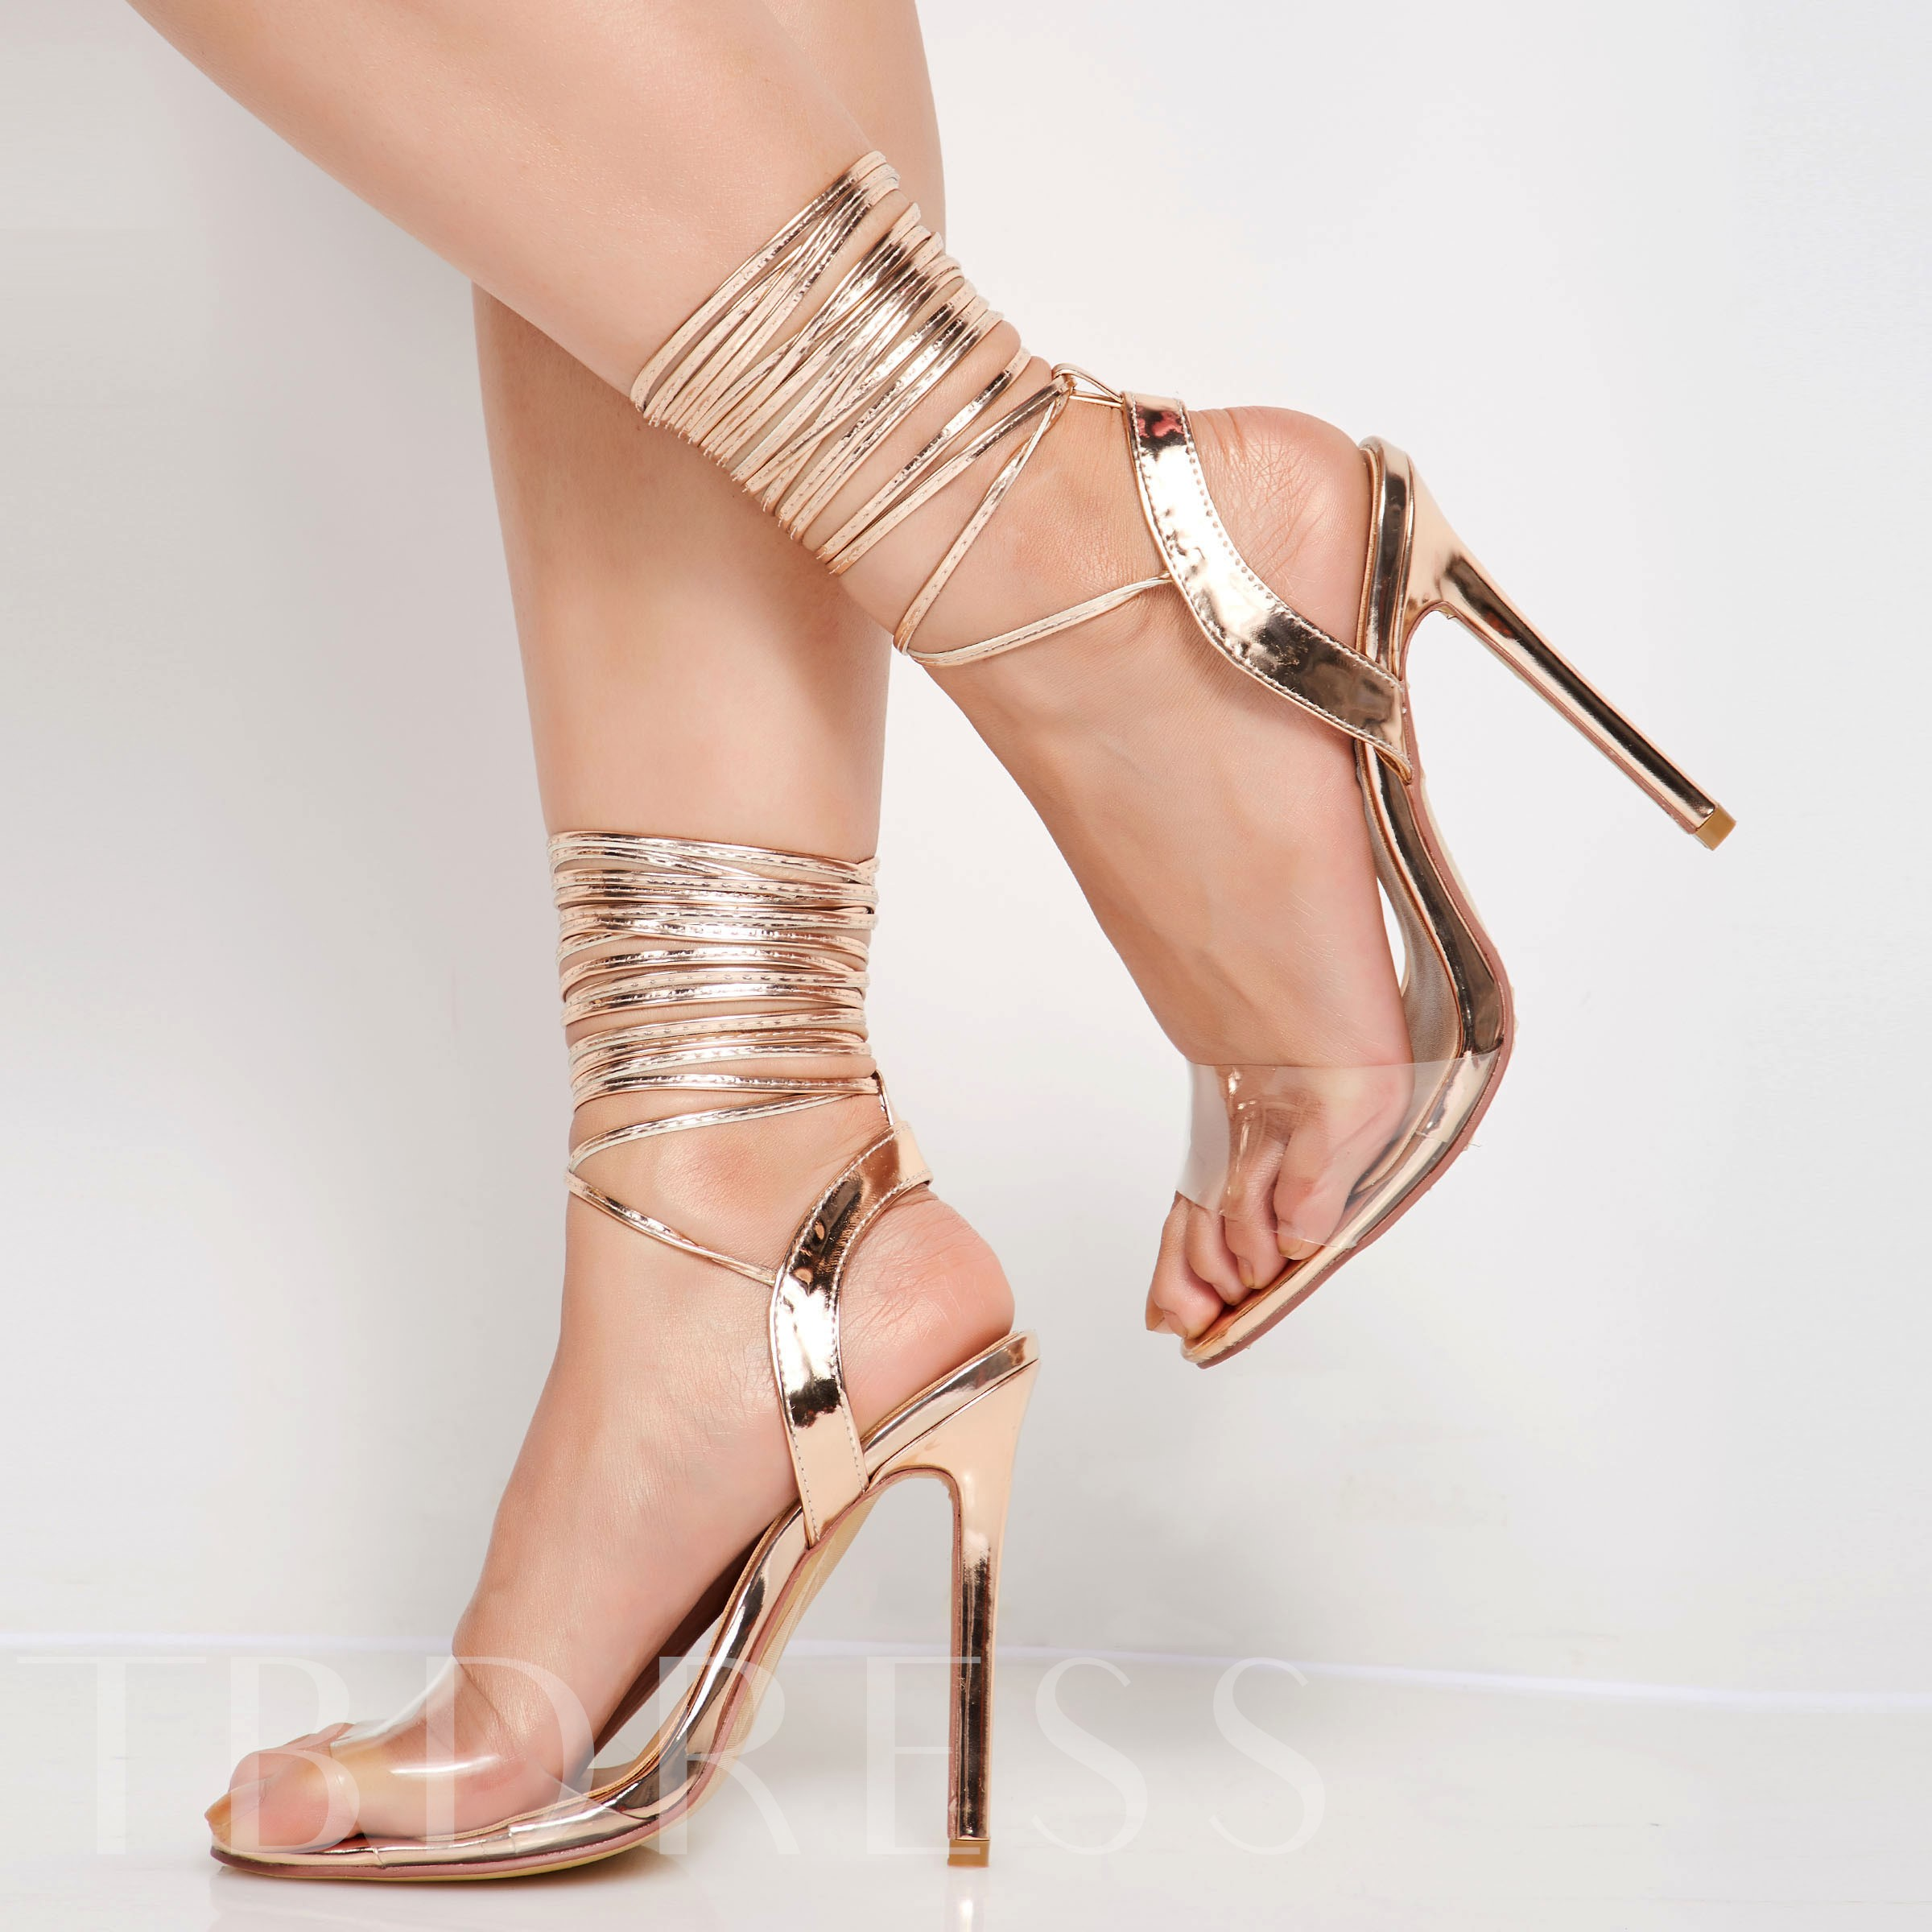 Lace-Up Open Toe Stiletto Heel Sandals